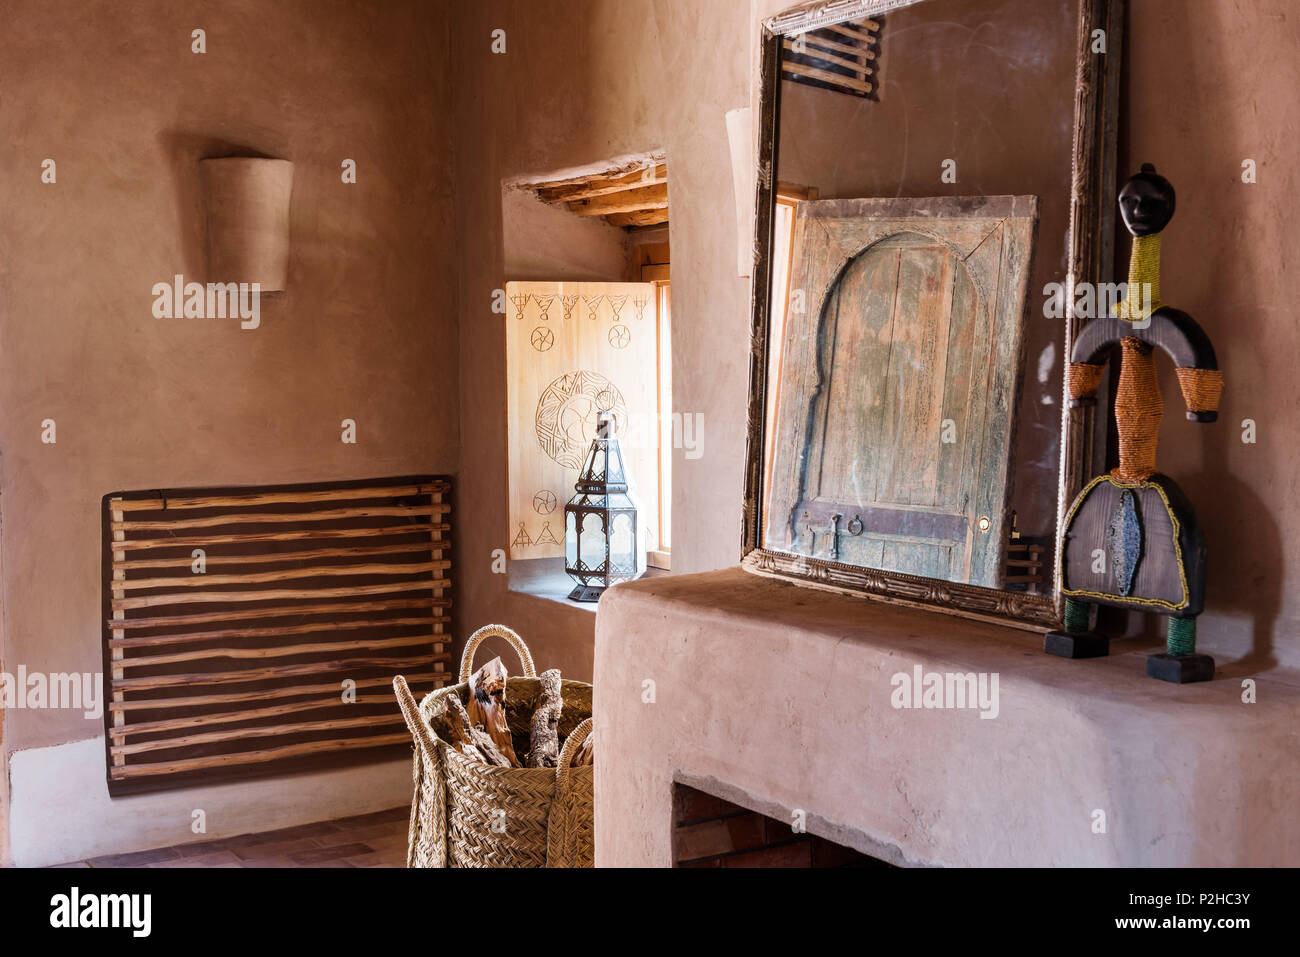 Rattan fire basket by open fireplace in bedroom woth earth walls and terracotta floors. A mirror and African folk art statue adorn the mantelpiece - Stock Image